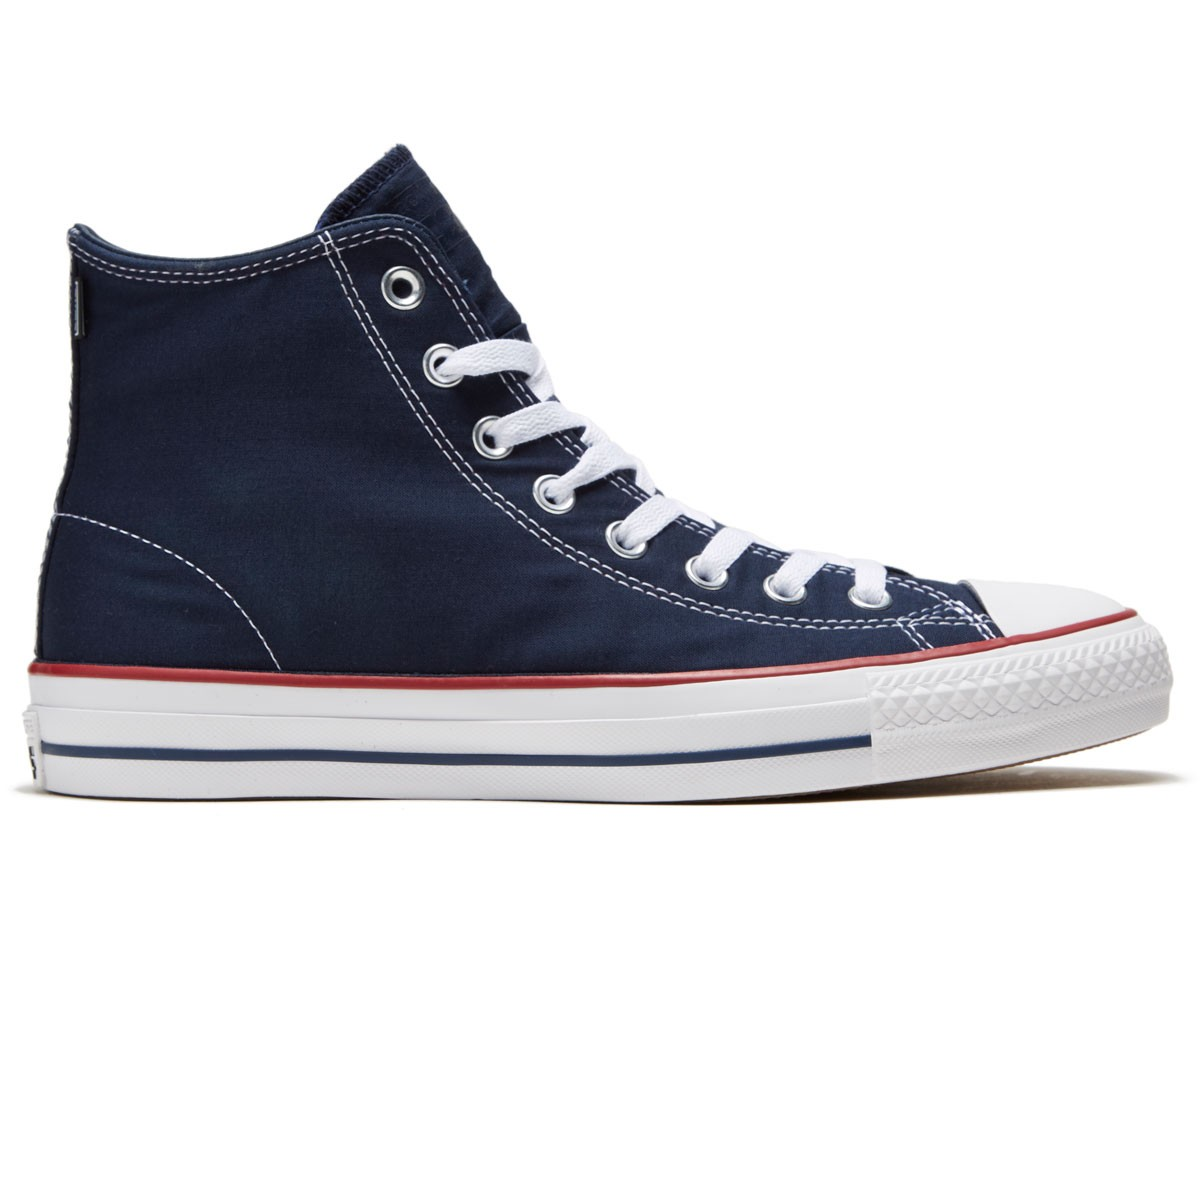 ecbb866c2b8183 Converse Chuck Taylor All Star Pro Archive Print Shoes - Obsidian/White/Enamel  Red